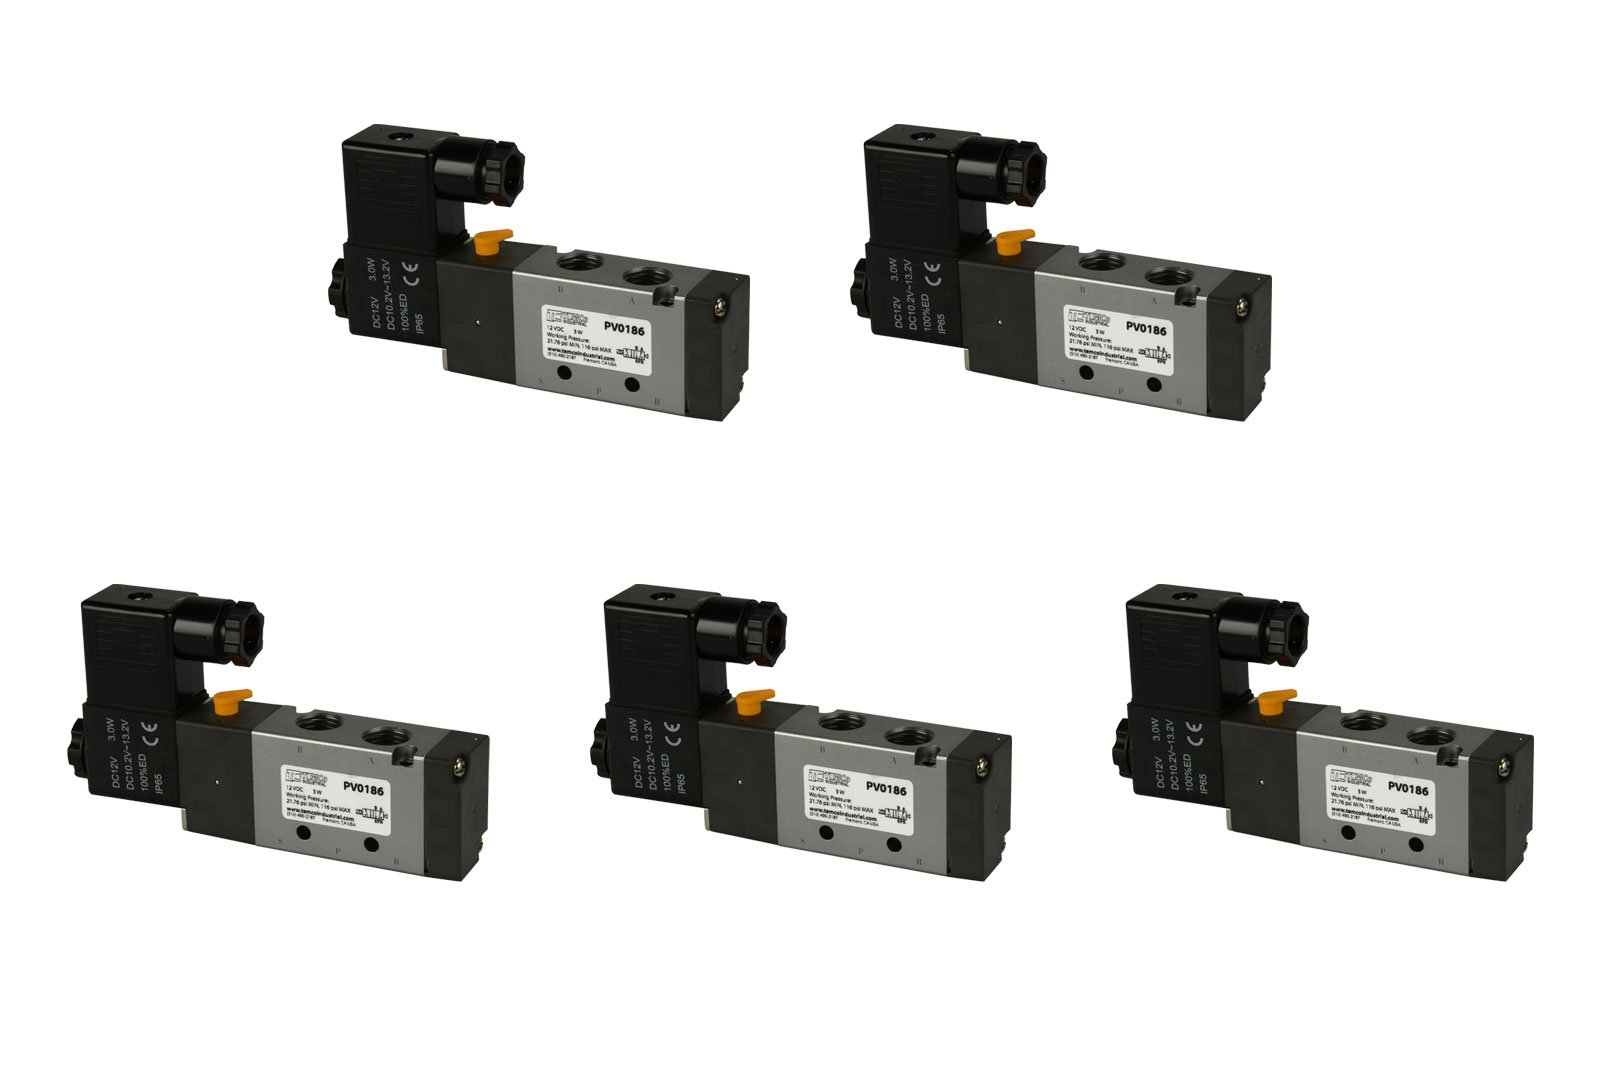 5 Qty 12V DC Solenoid Air Pneumatic Control Pilot Valve 5 Port 4 Way 2 Position 1/4'' NPT by Temco